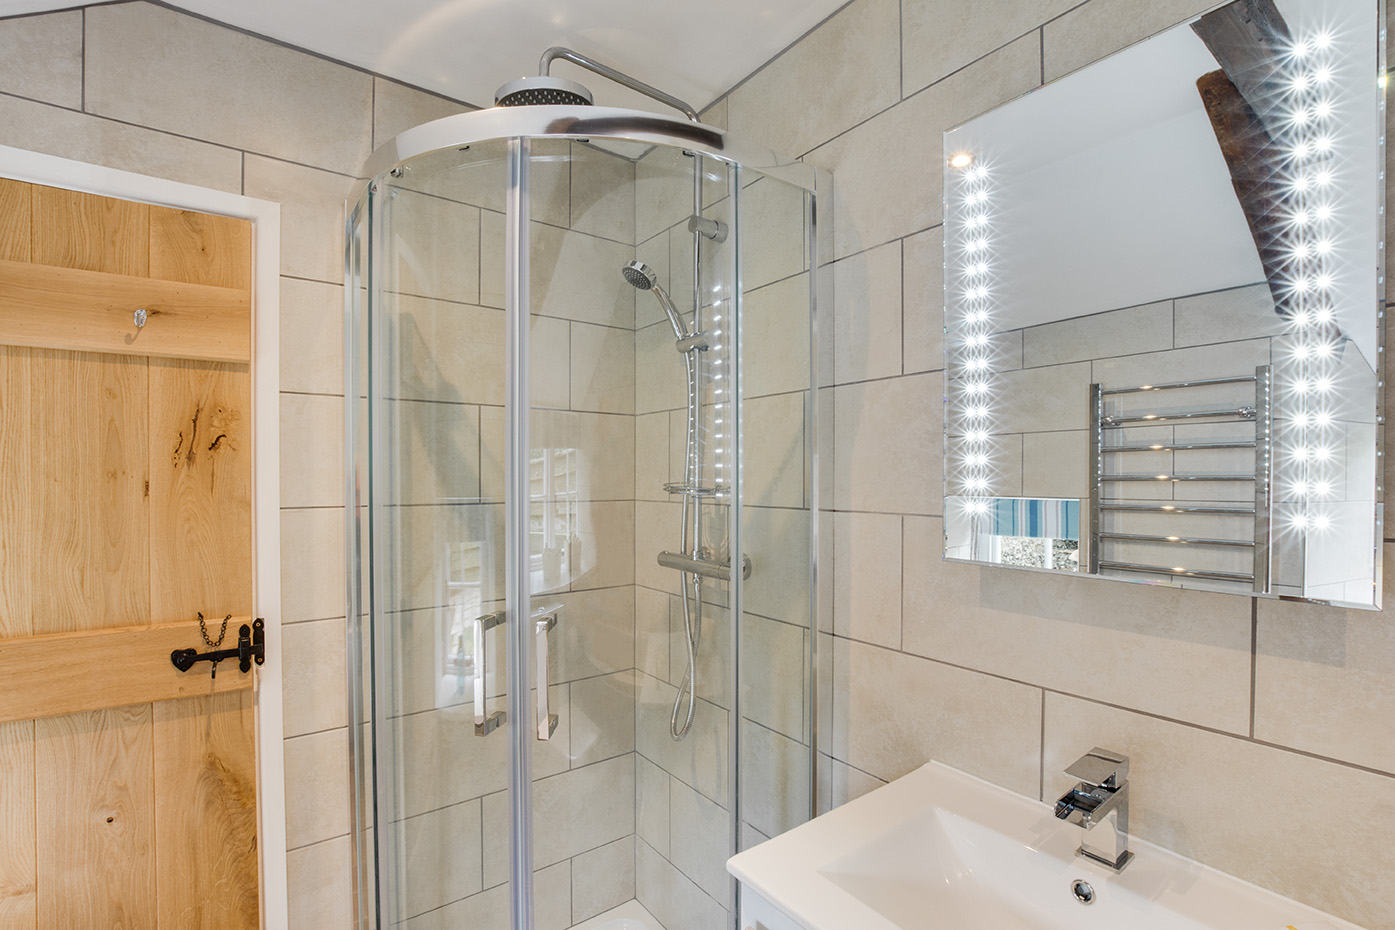 The bathroom of Snappers luxury self catering converted barn holiday cottage at Penrose Burden in North Cornwall 02.jpg